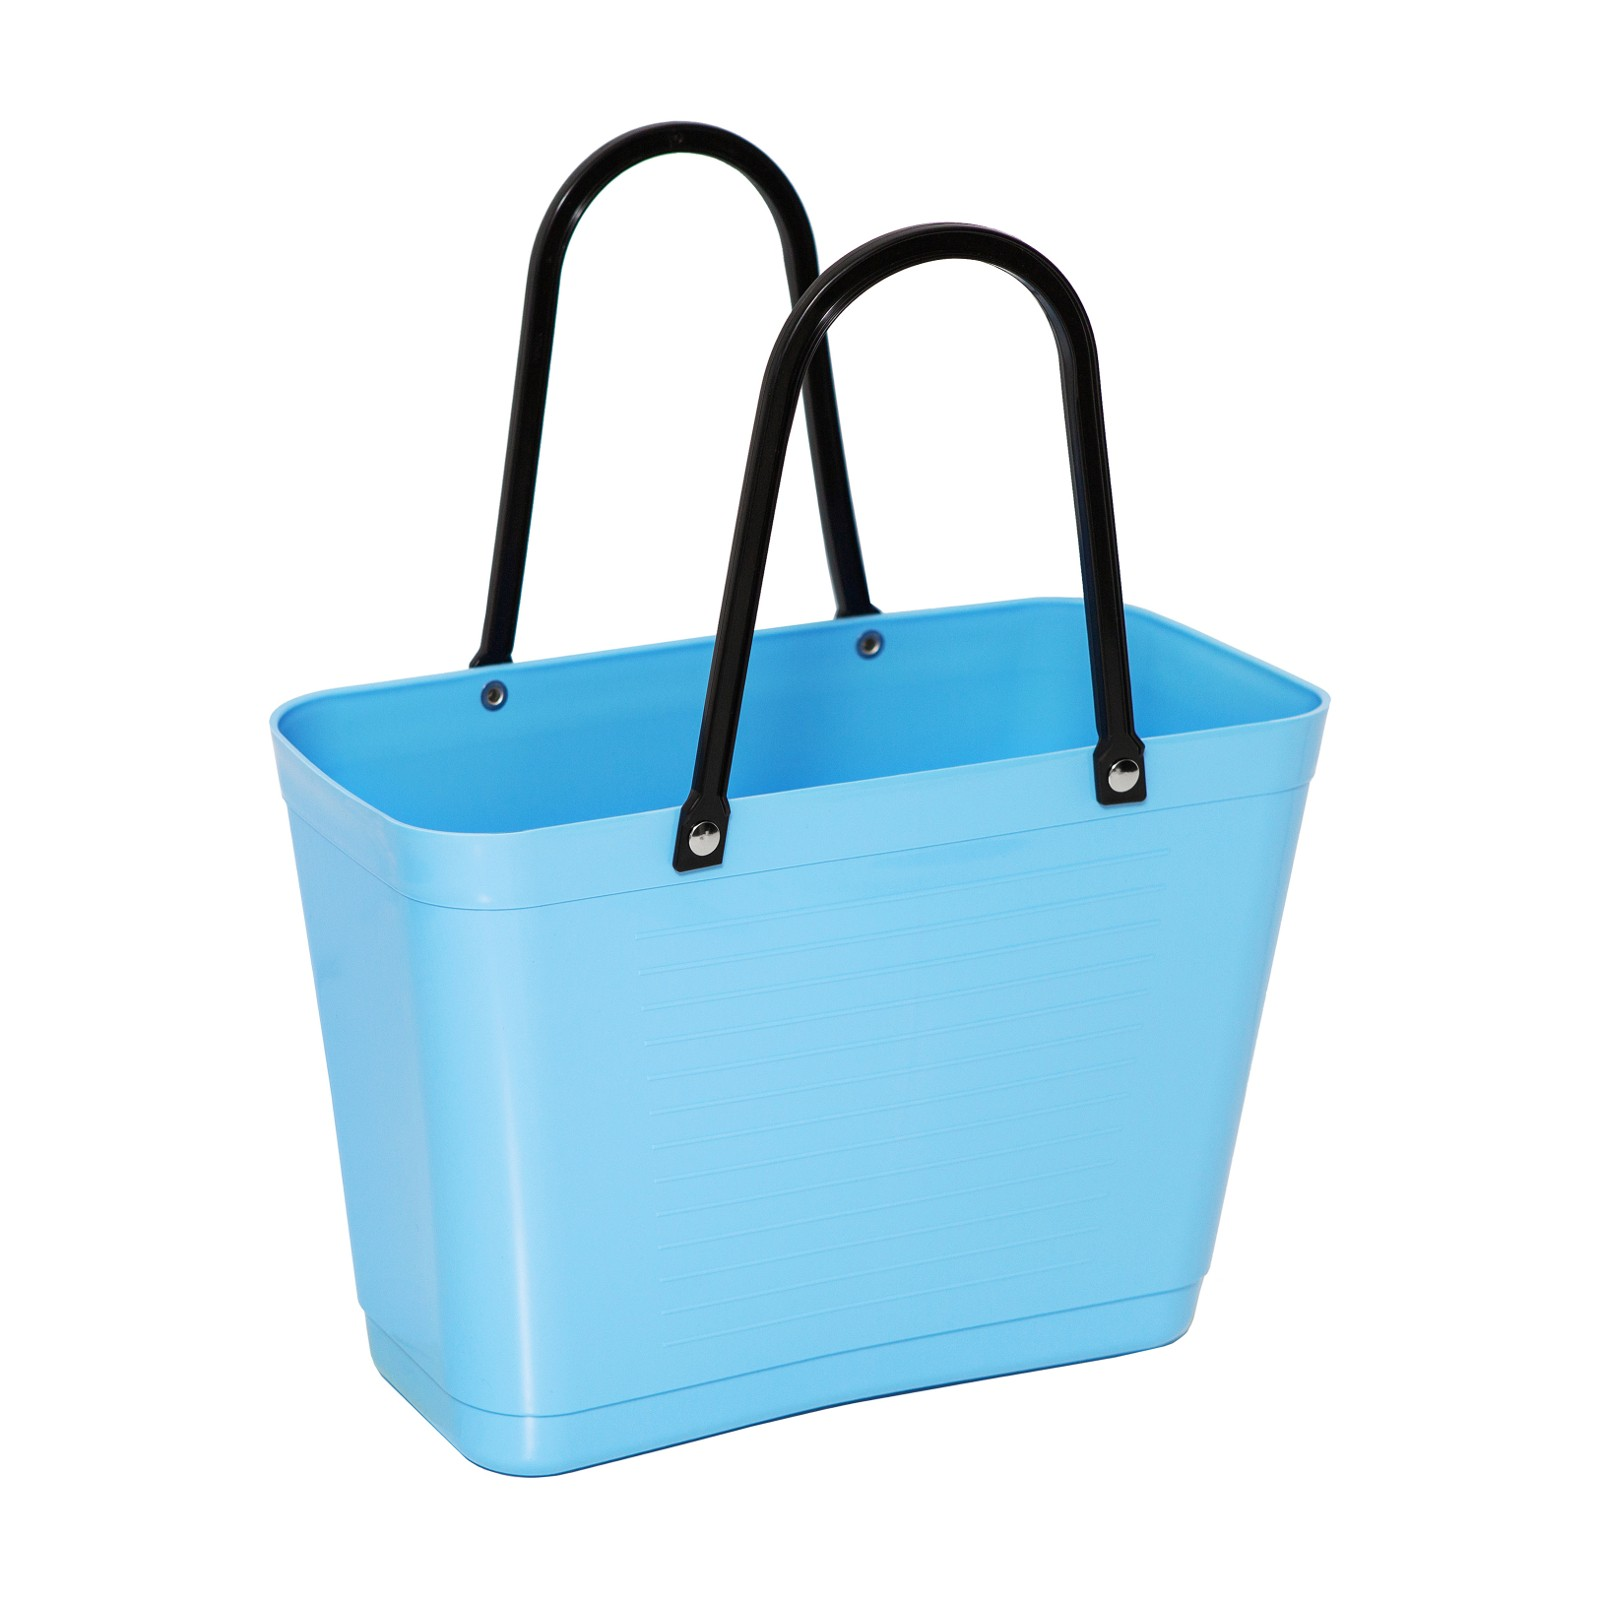 hinza 254-hinza-bag-small-light-blue-green-plastic